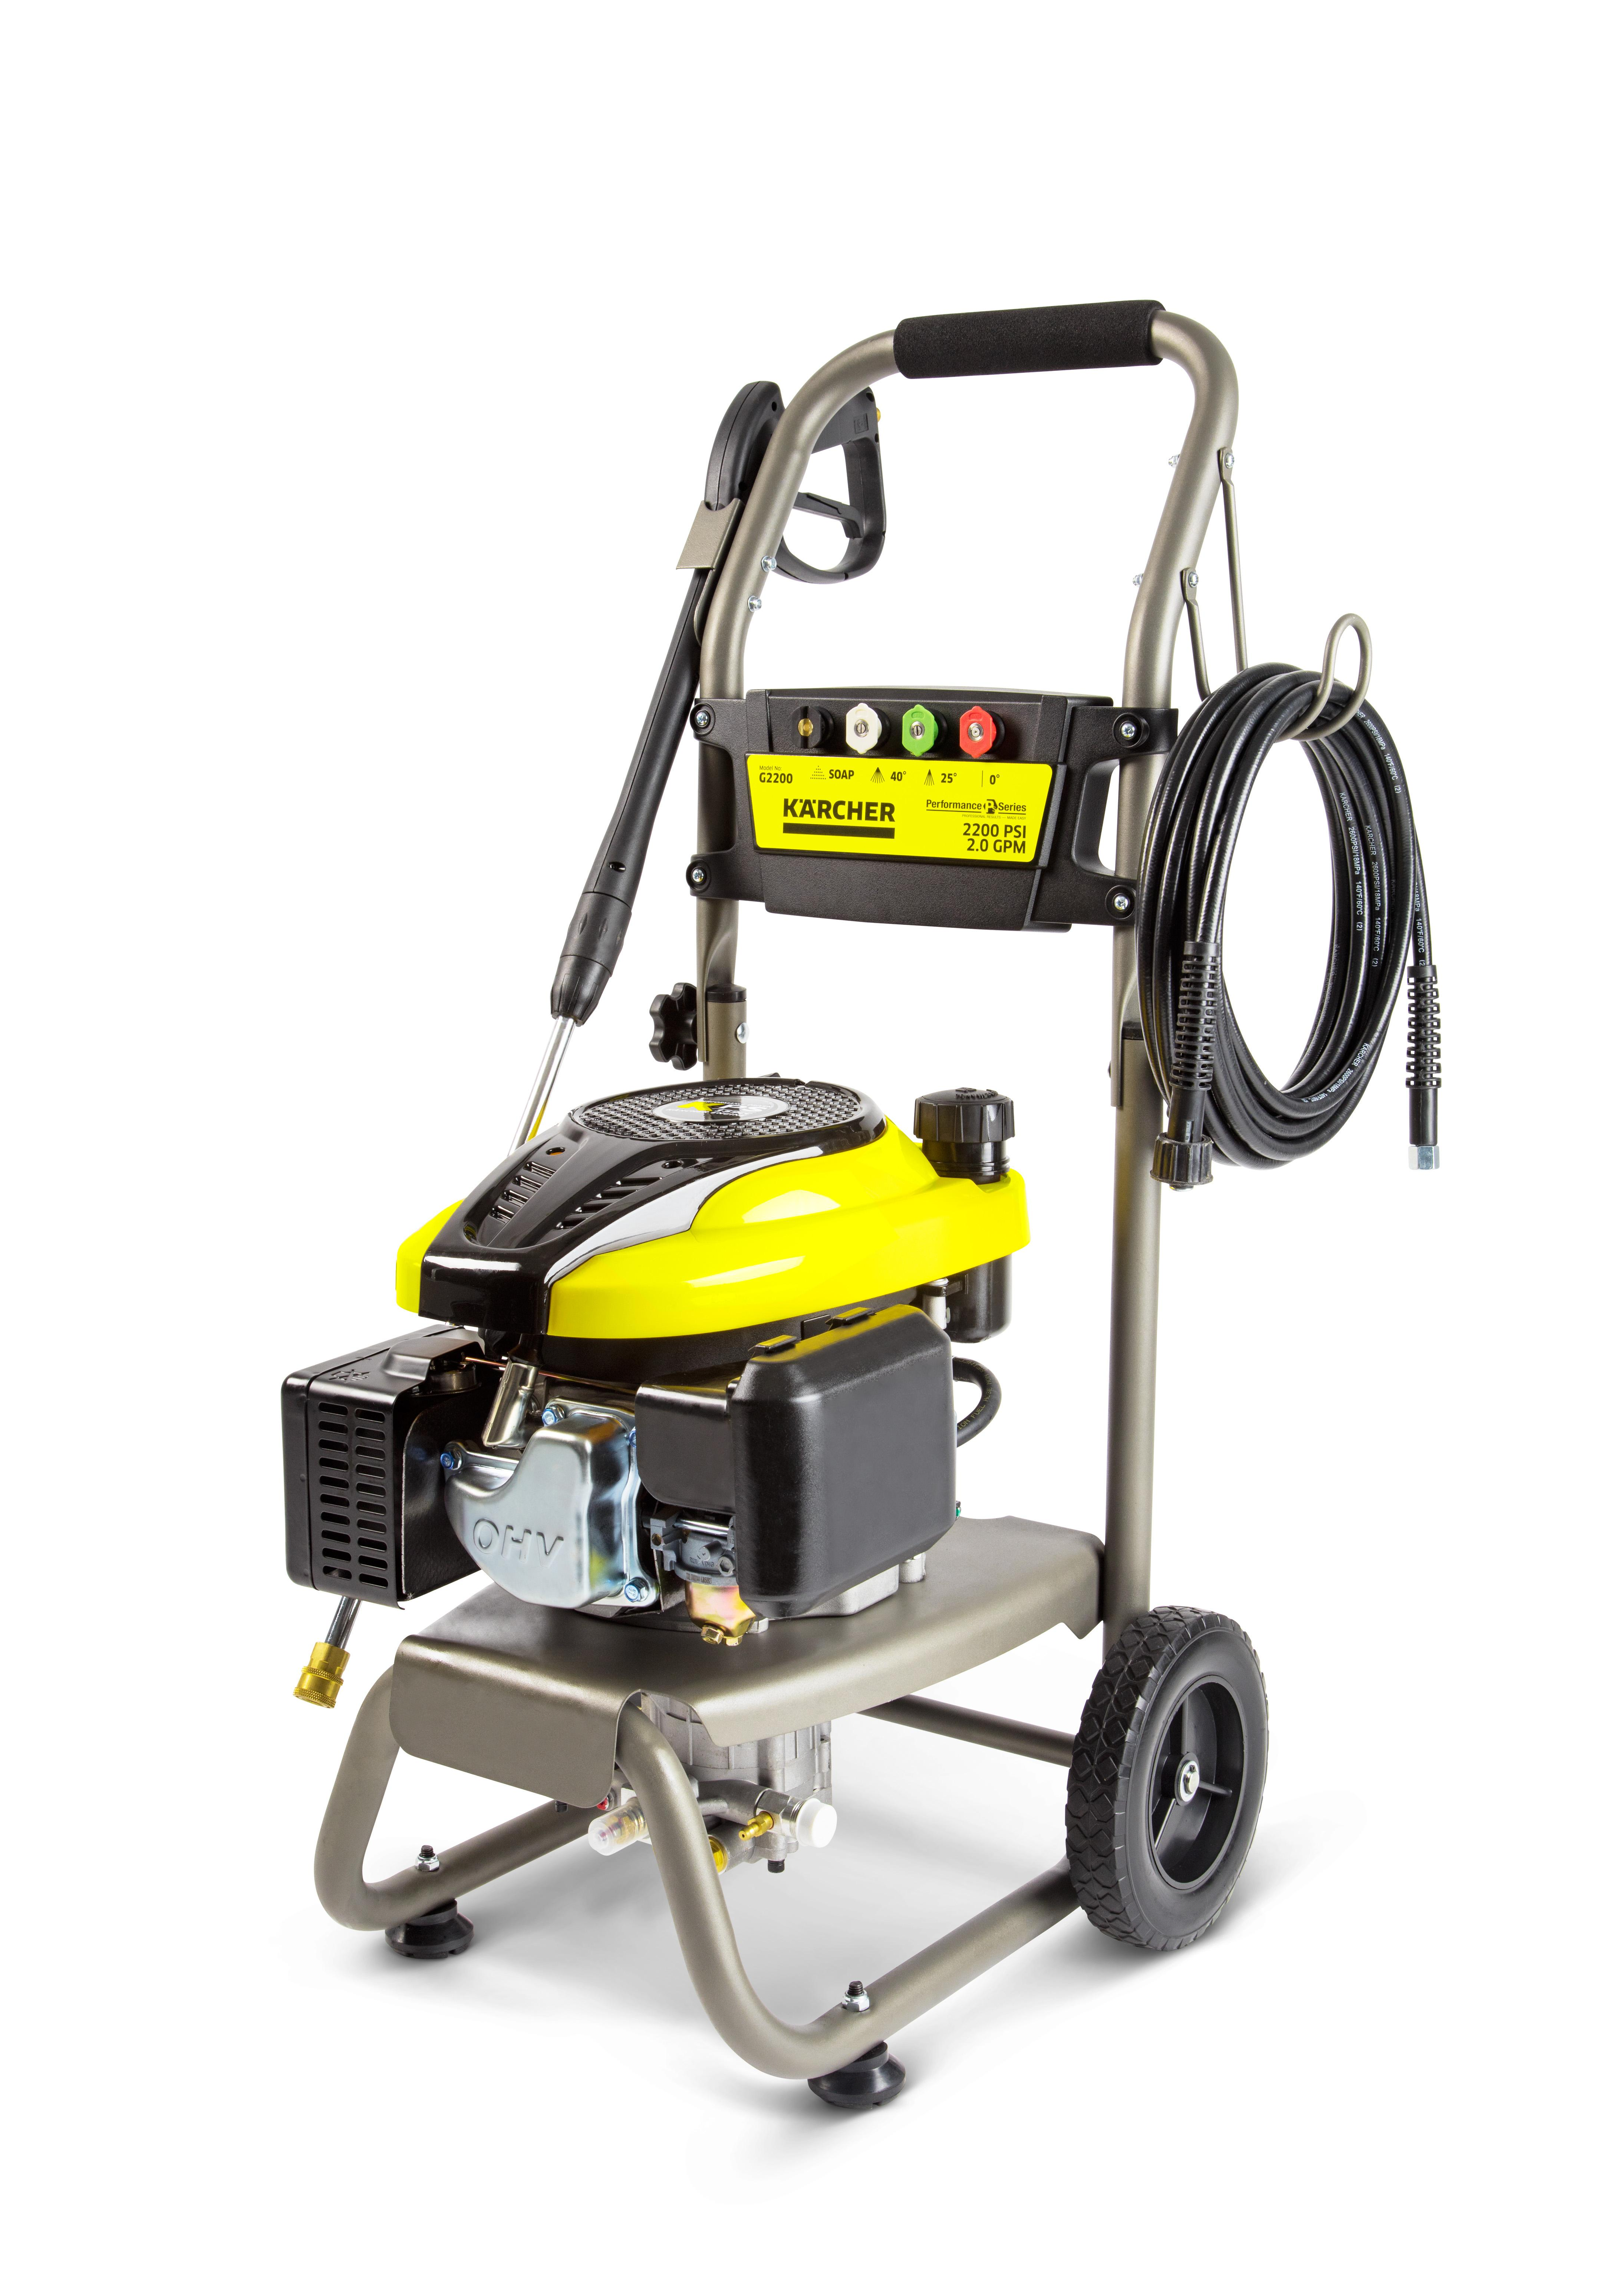 amazoncom karcher  performance series gas power pressure washer  psi  gpm